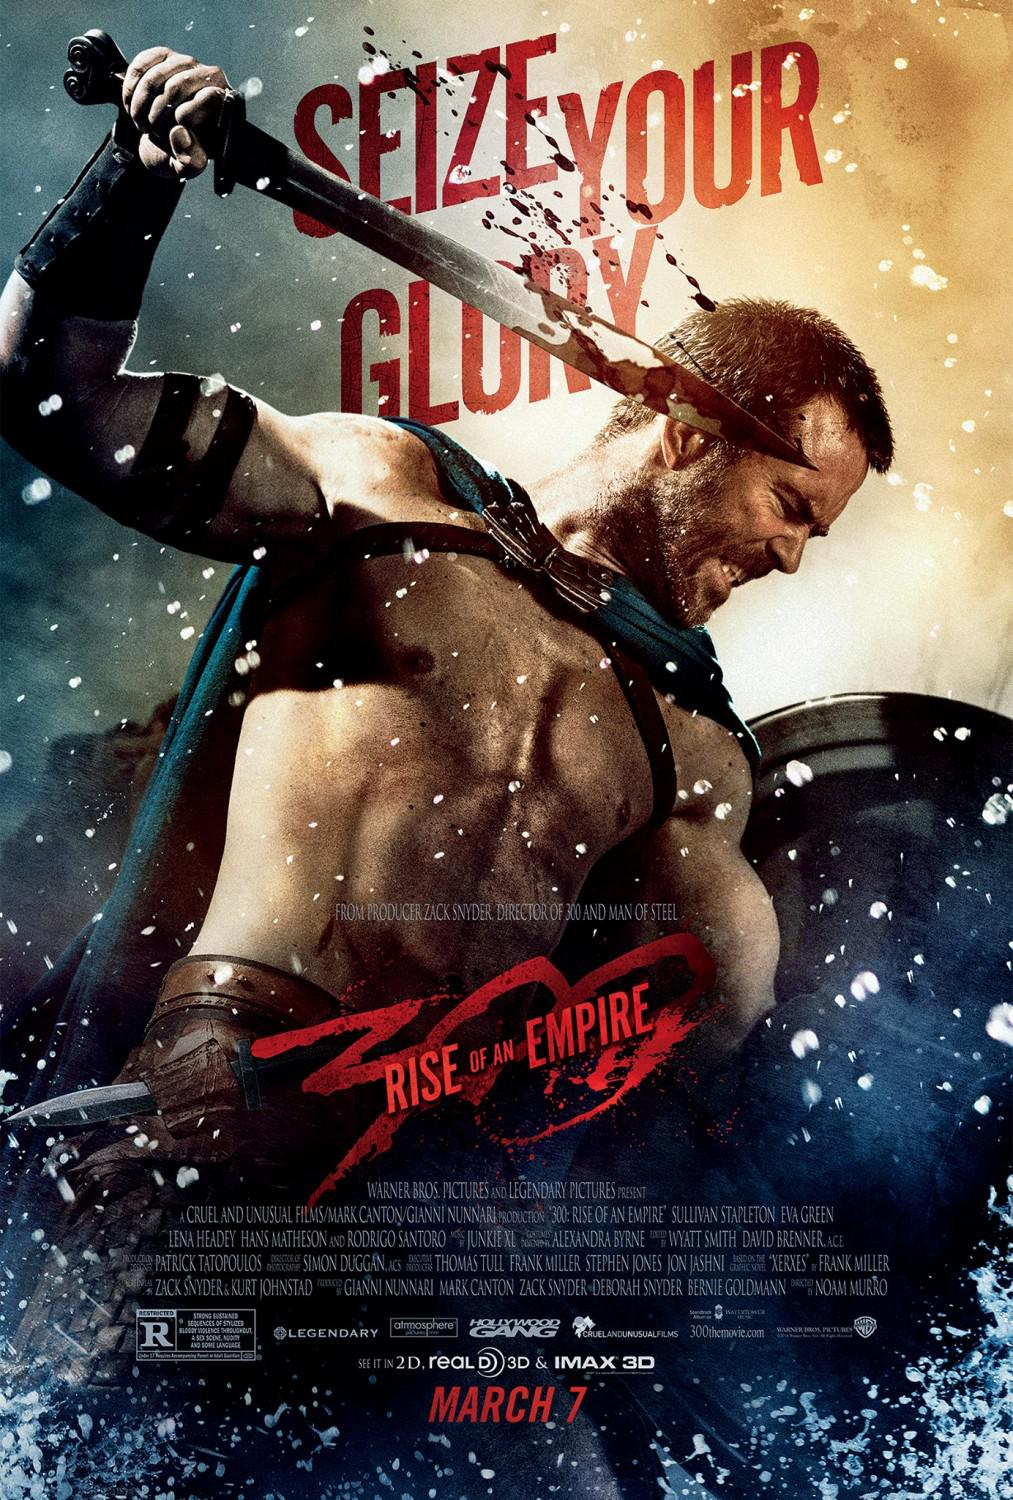 300 Alba di un Impero - Three hundred rise of an Empire - poster